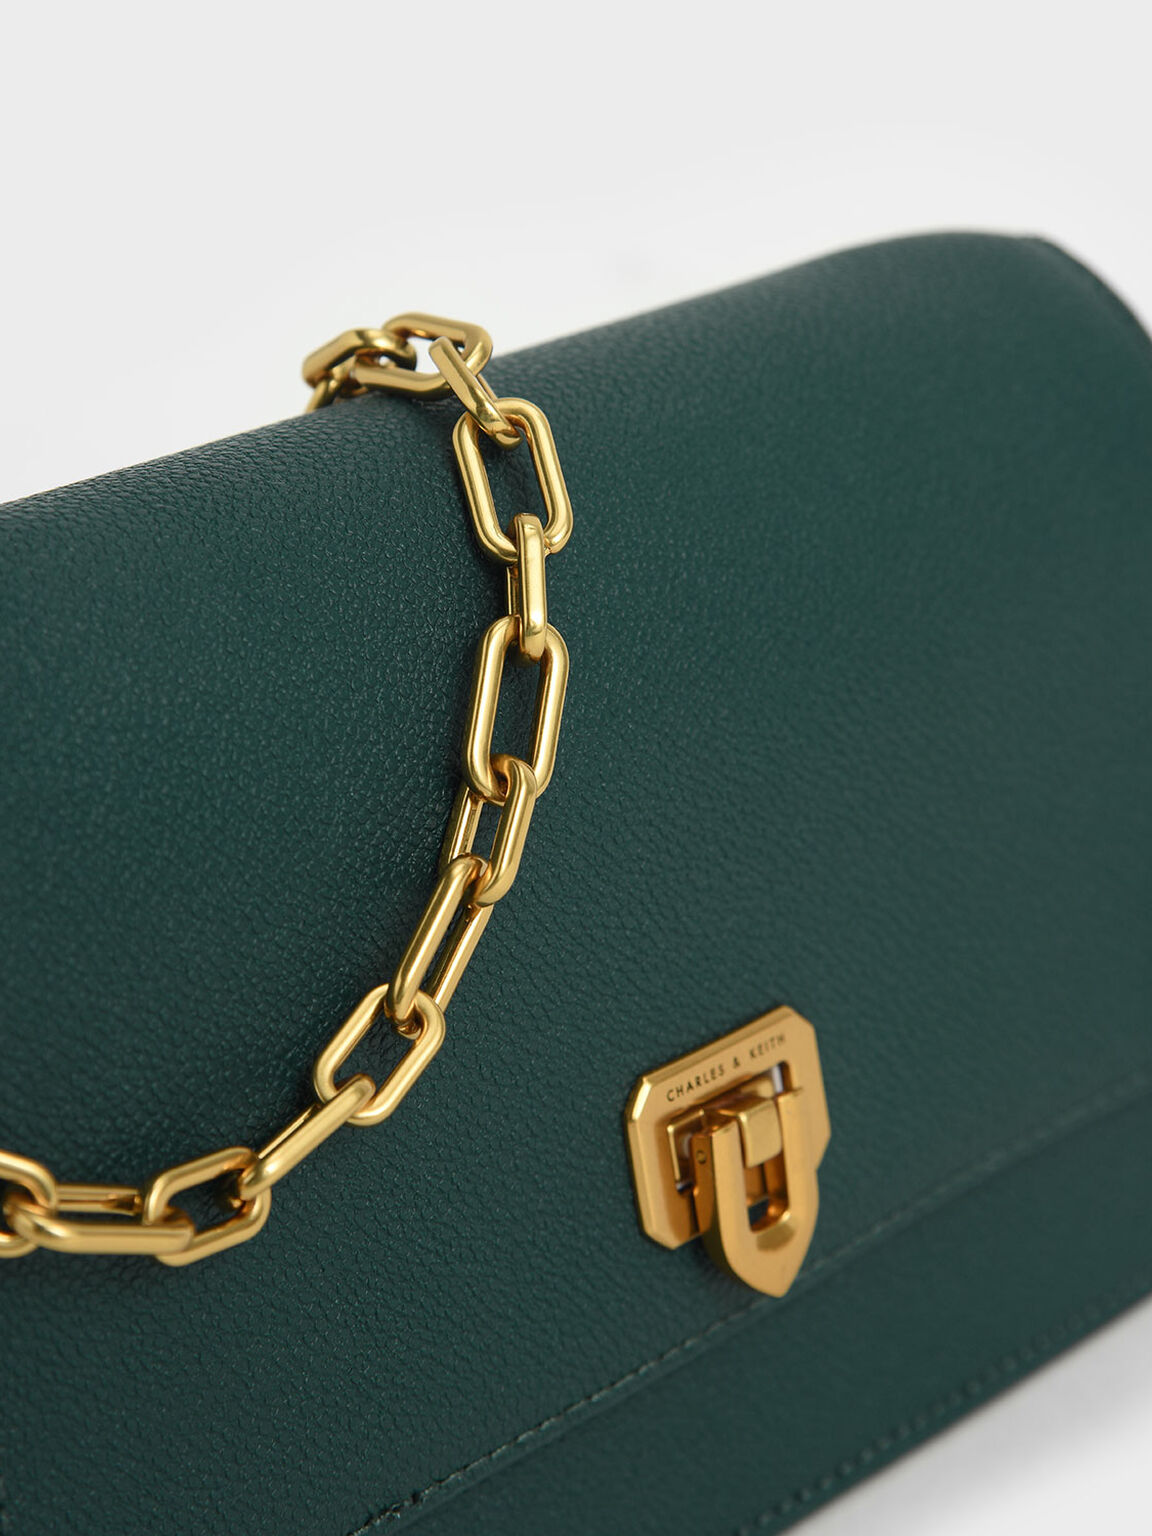 Double Chain Link Push-Lock Bag, Green, hi-res